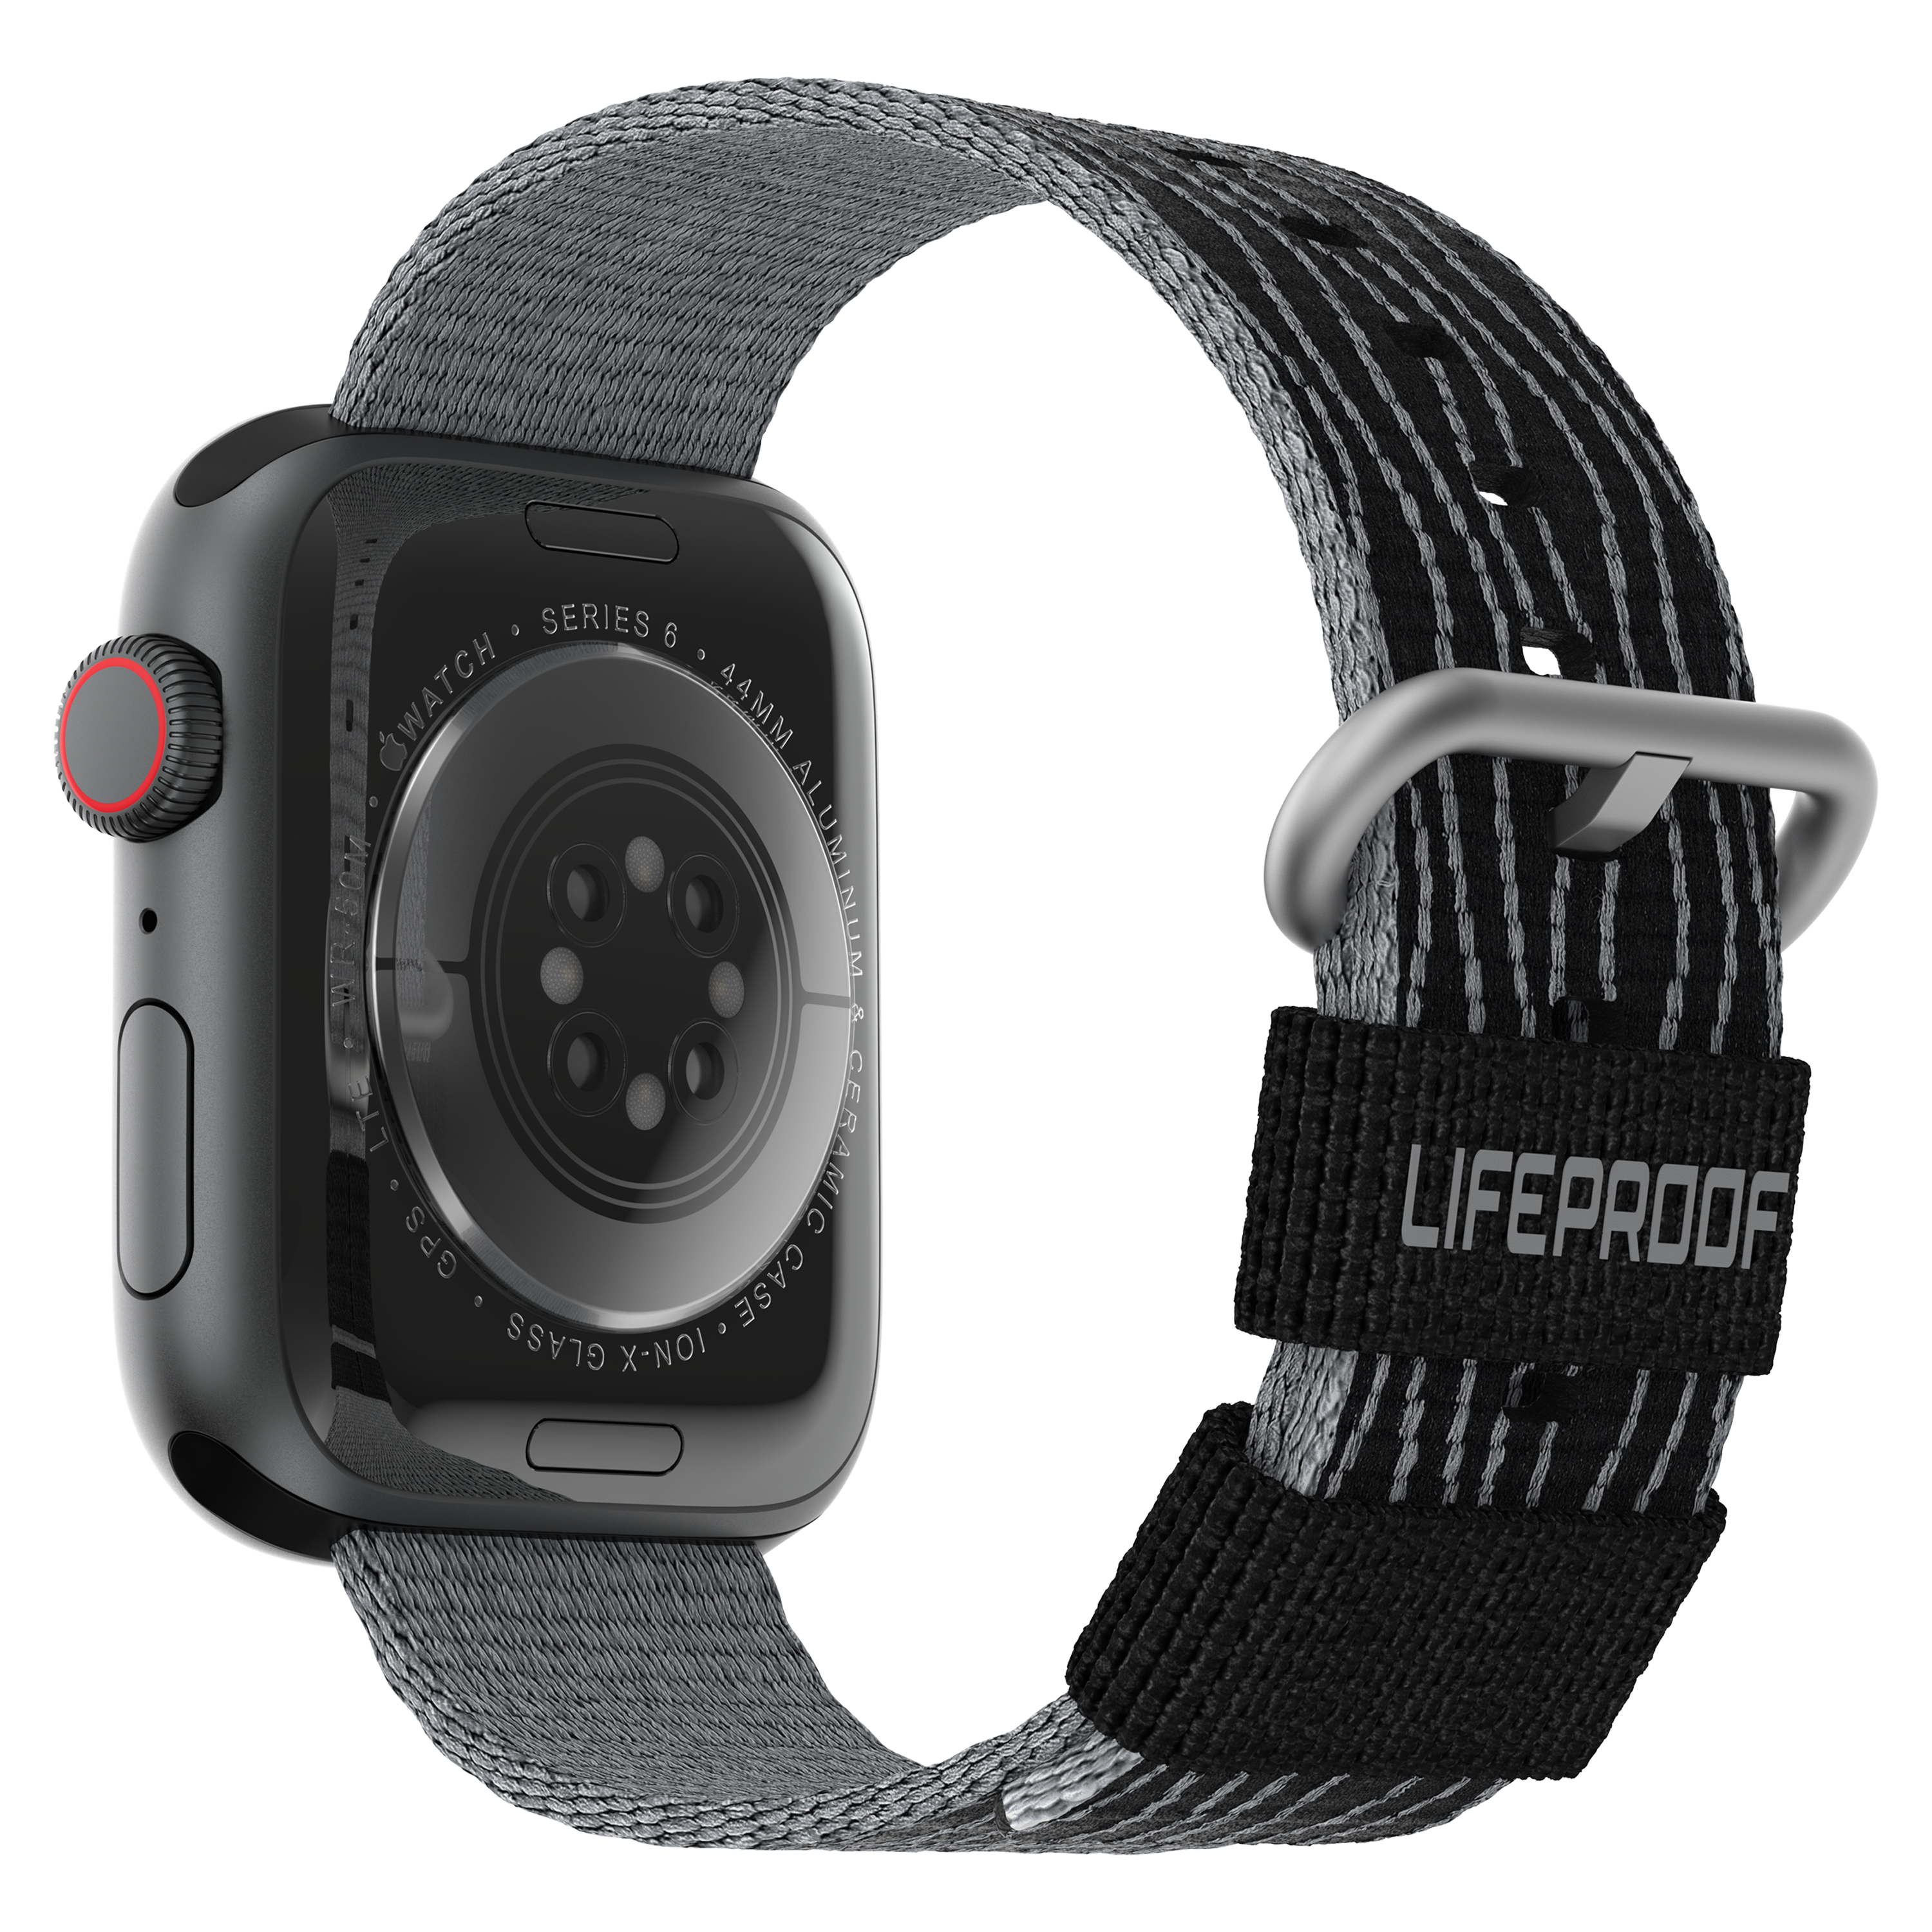 wholesale cellphone accessories LIFEPROOF APPLE WATCH ACCESSORIES